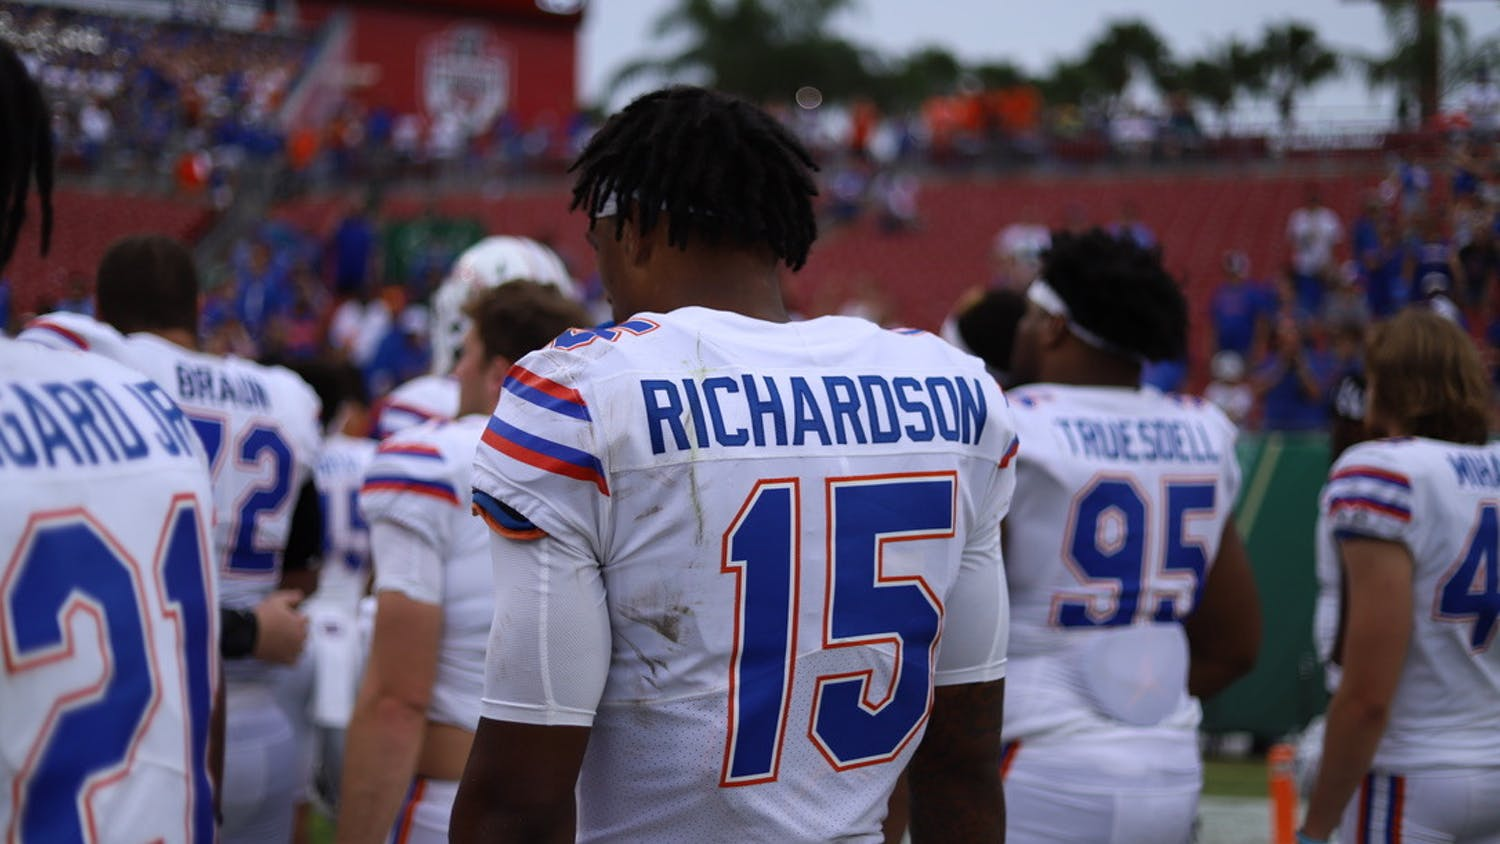 Florida's Anthony Richardson stands on the sideline during the Gators' Sept. 11 game against South Florida.